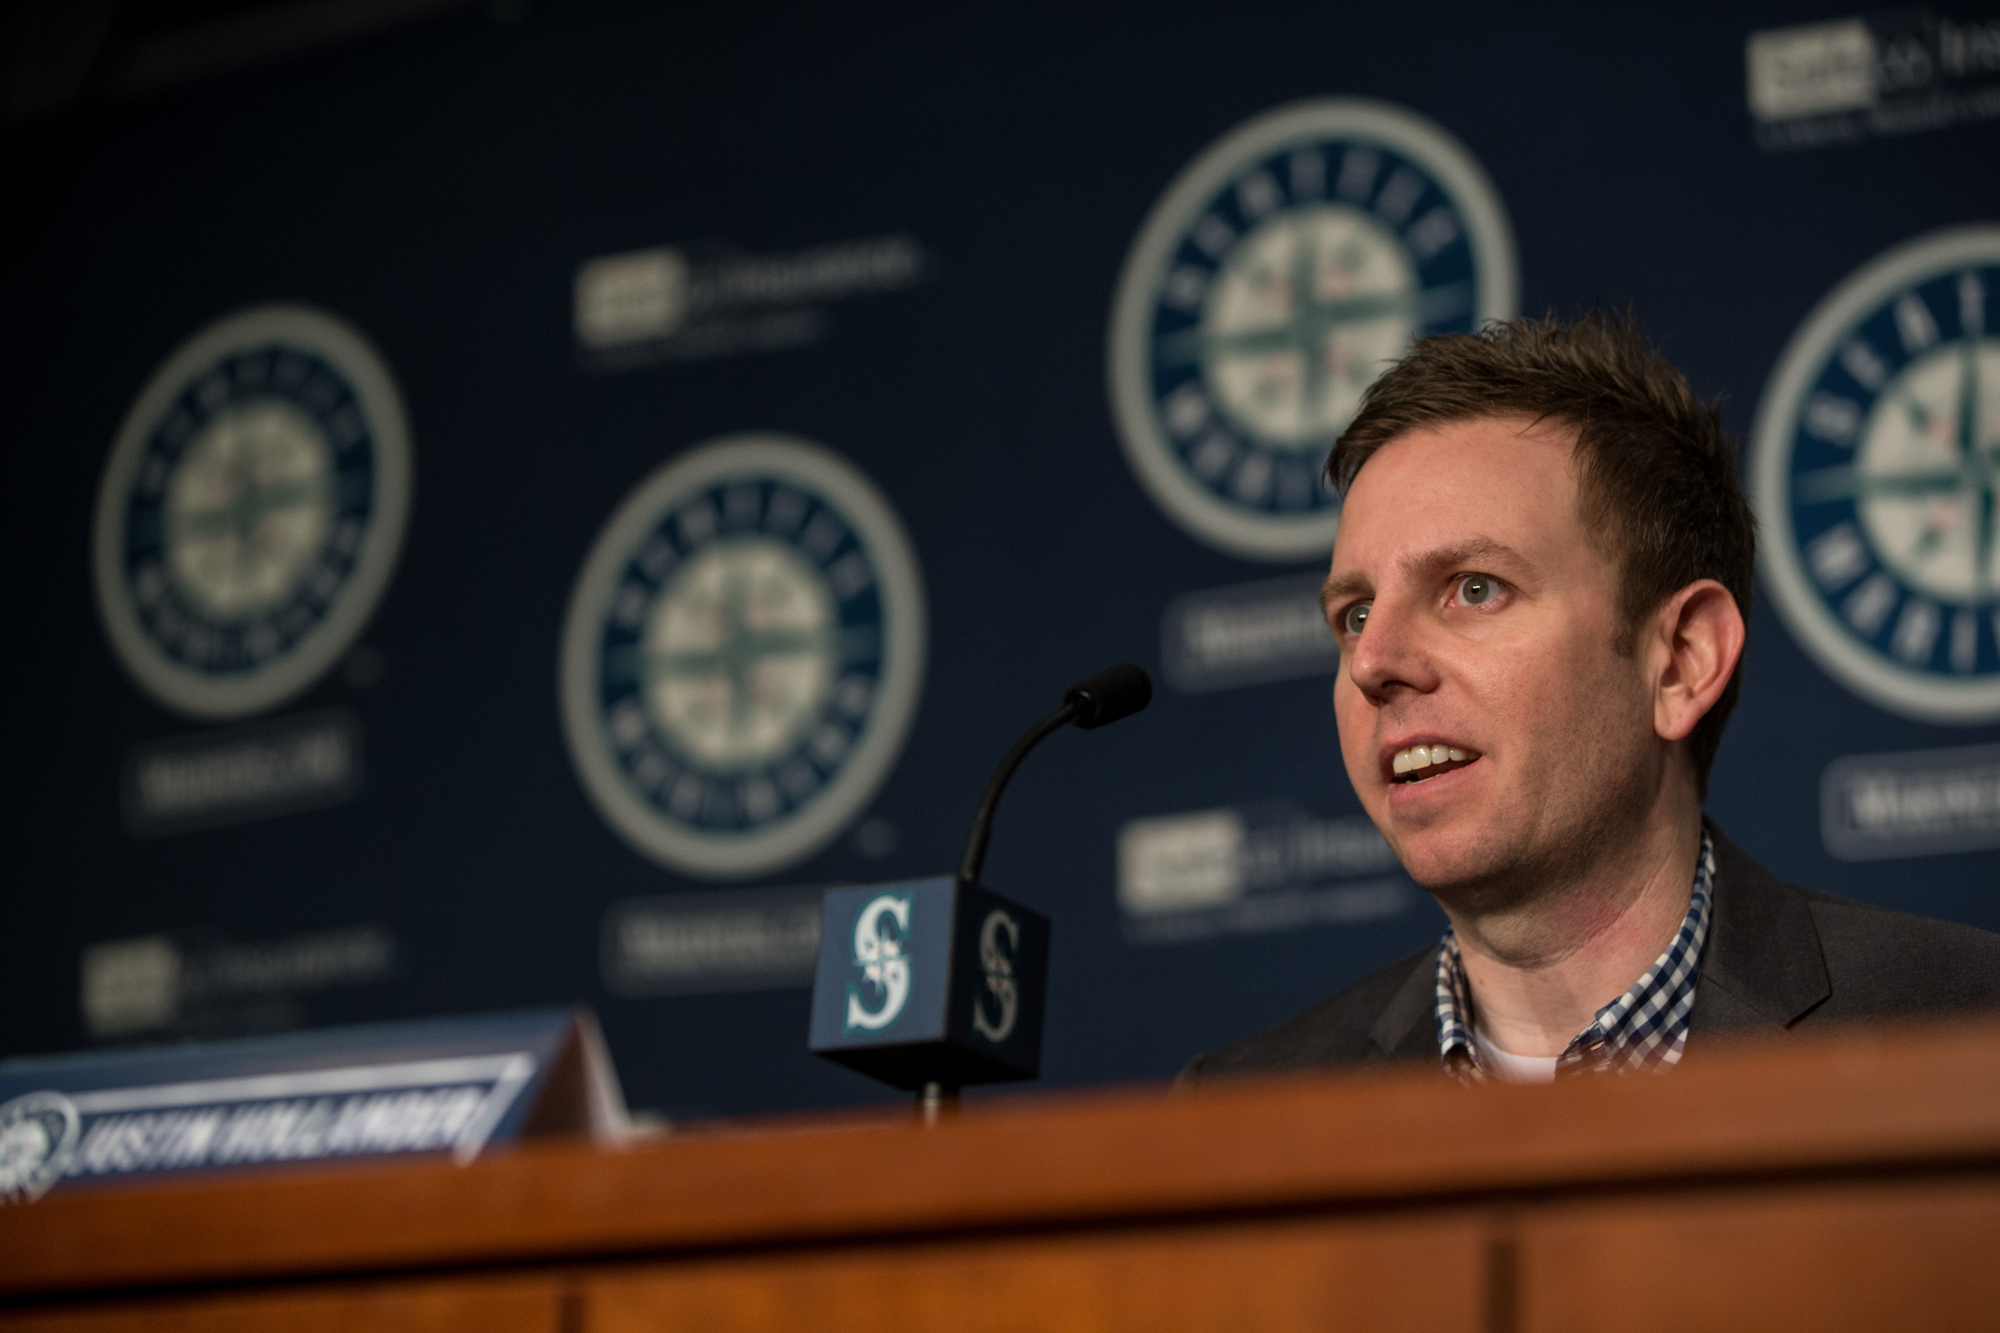 Seattle Mariners promote Hollander to VP, assistant GM of Baseball Ops